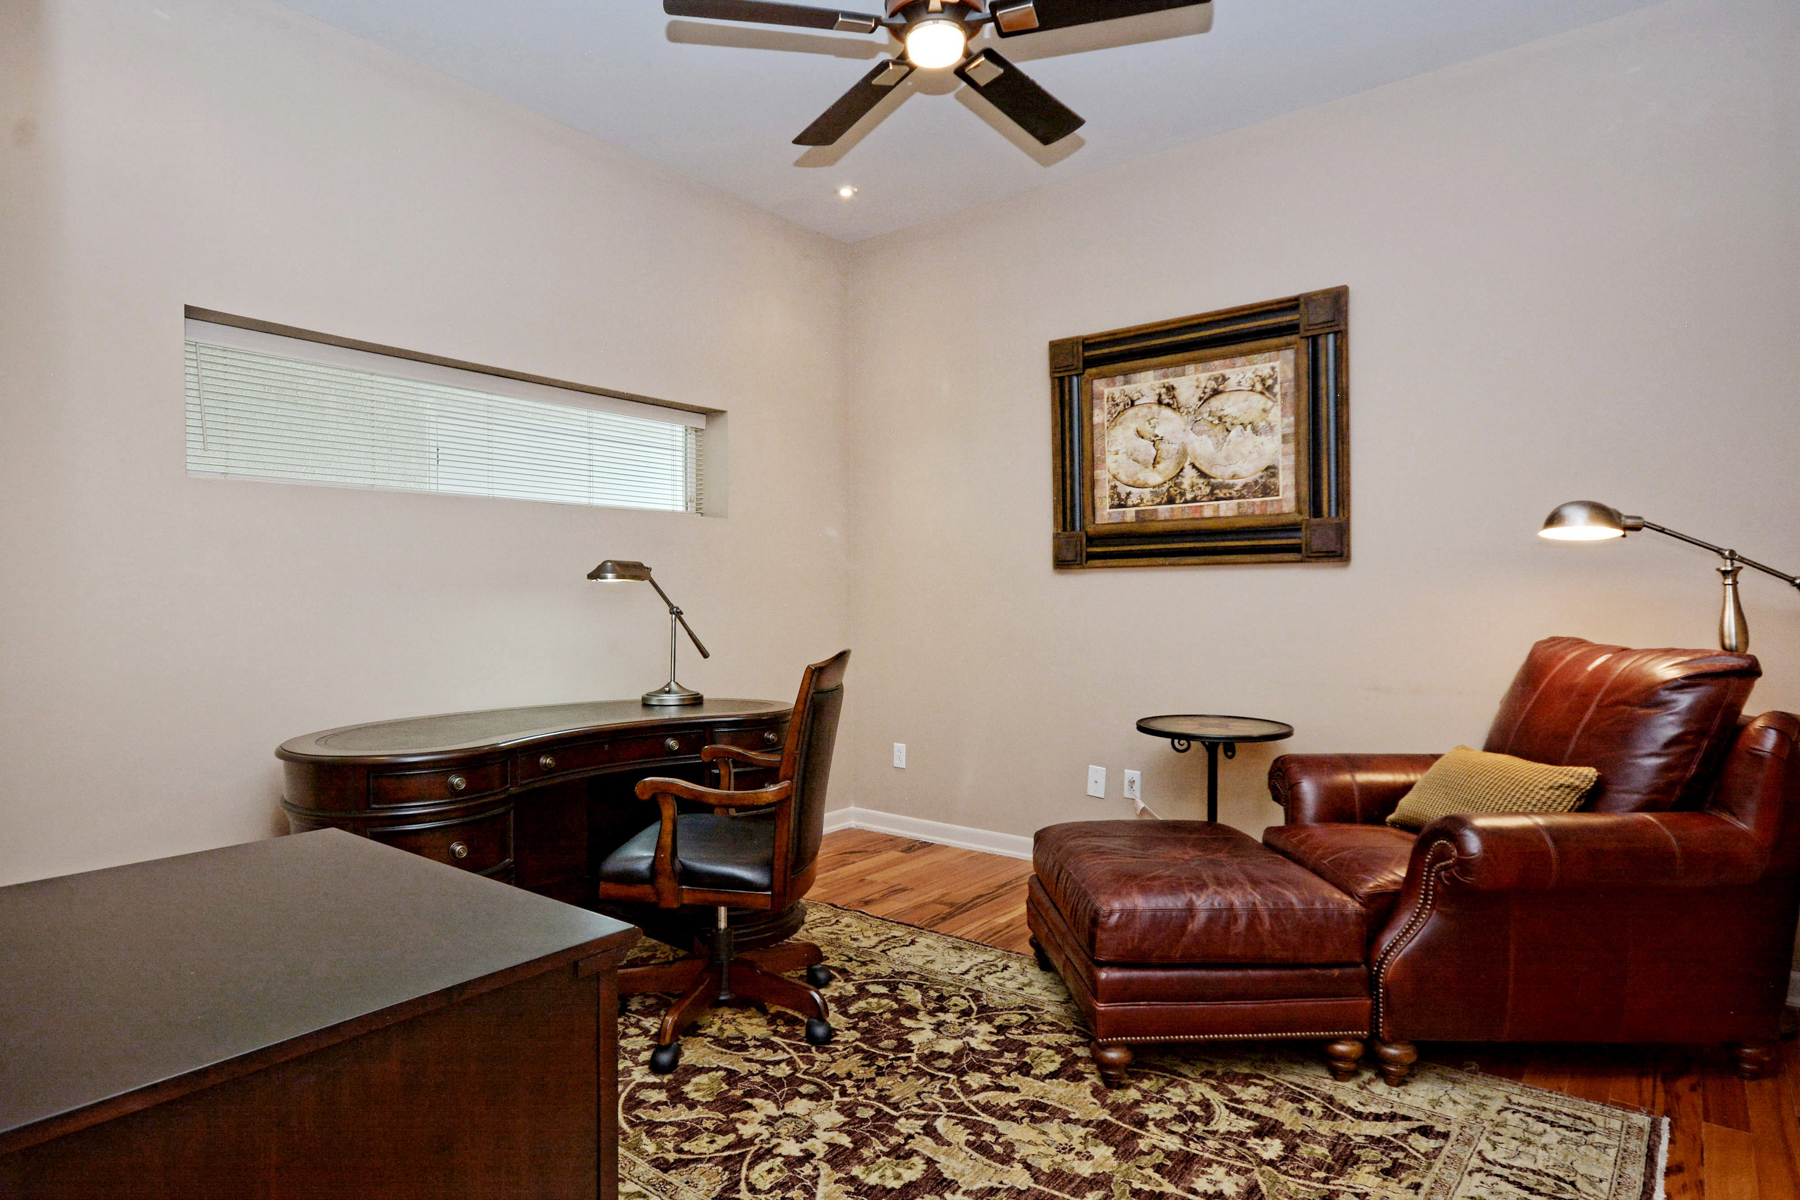 Additional photo for property listing at Immaculate Ricchi Condo 17902 La Cantera Pkwy 507 San Antonio, Texas 78257 United States